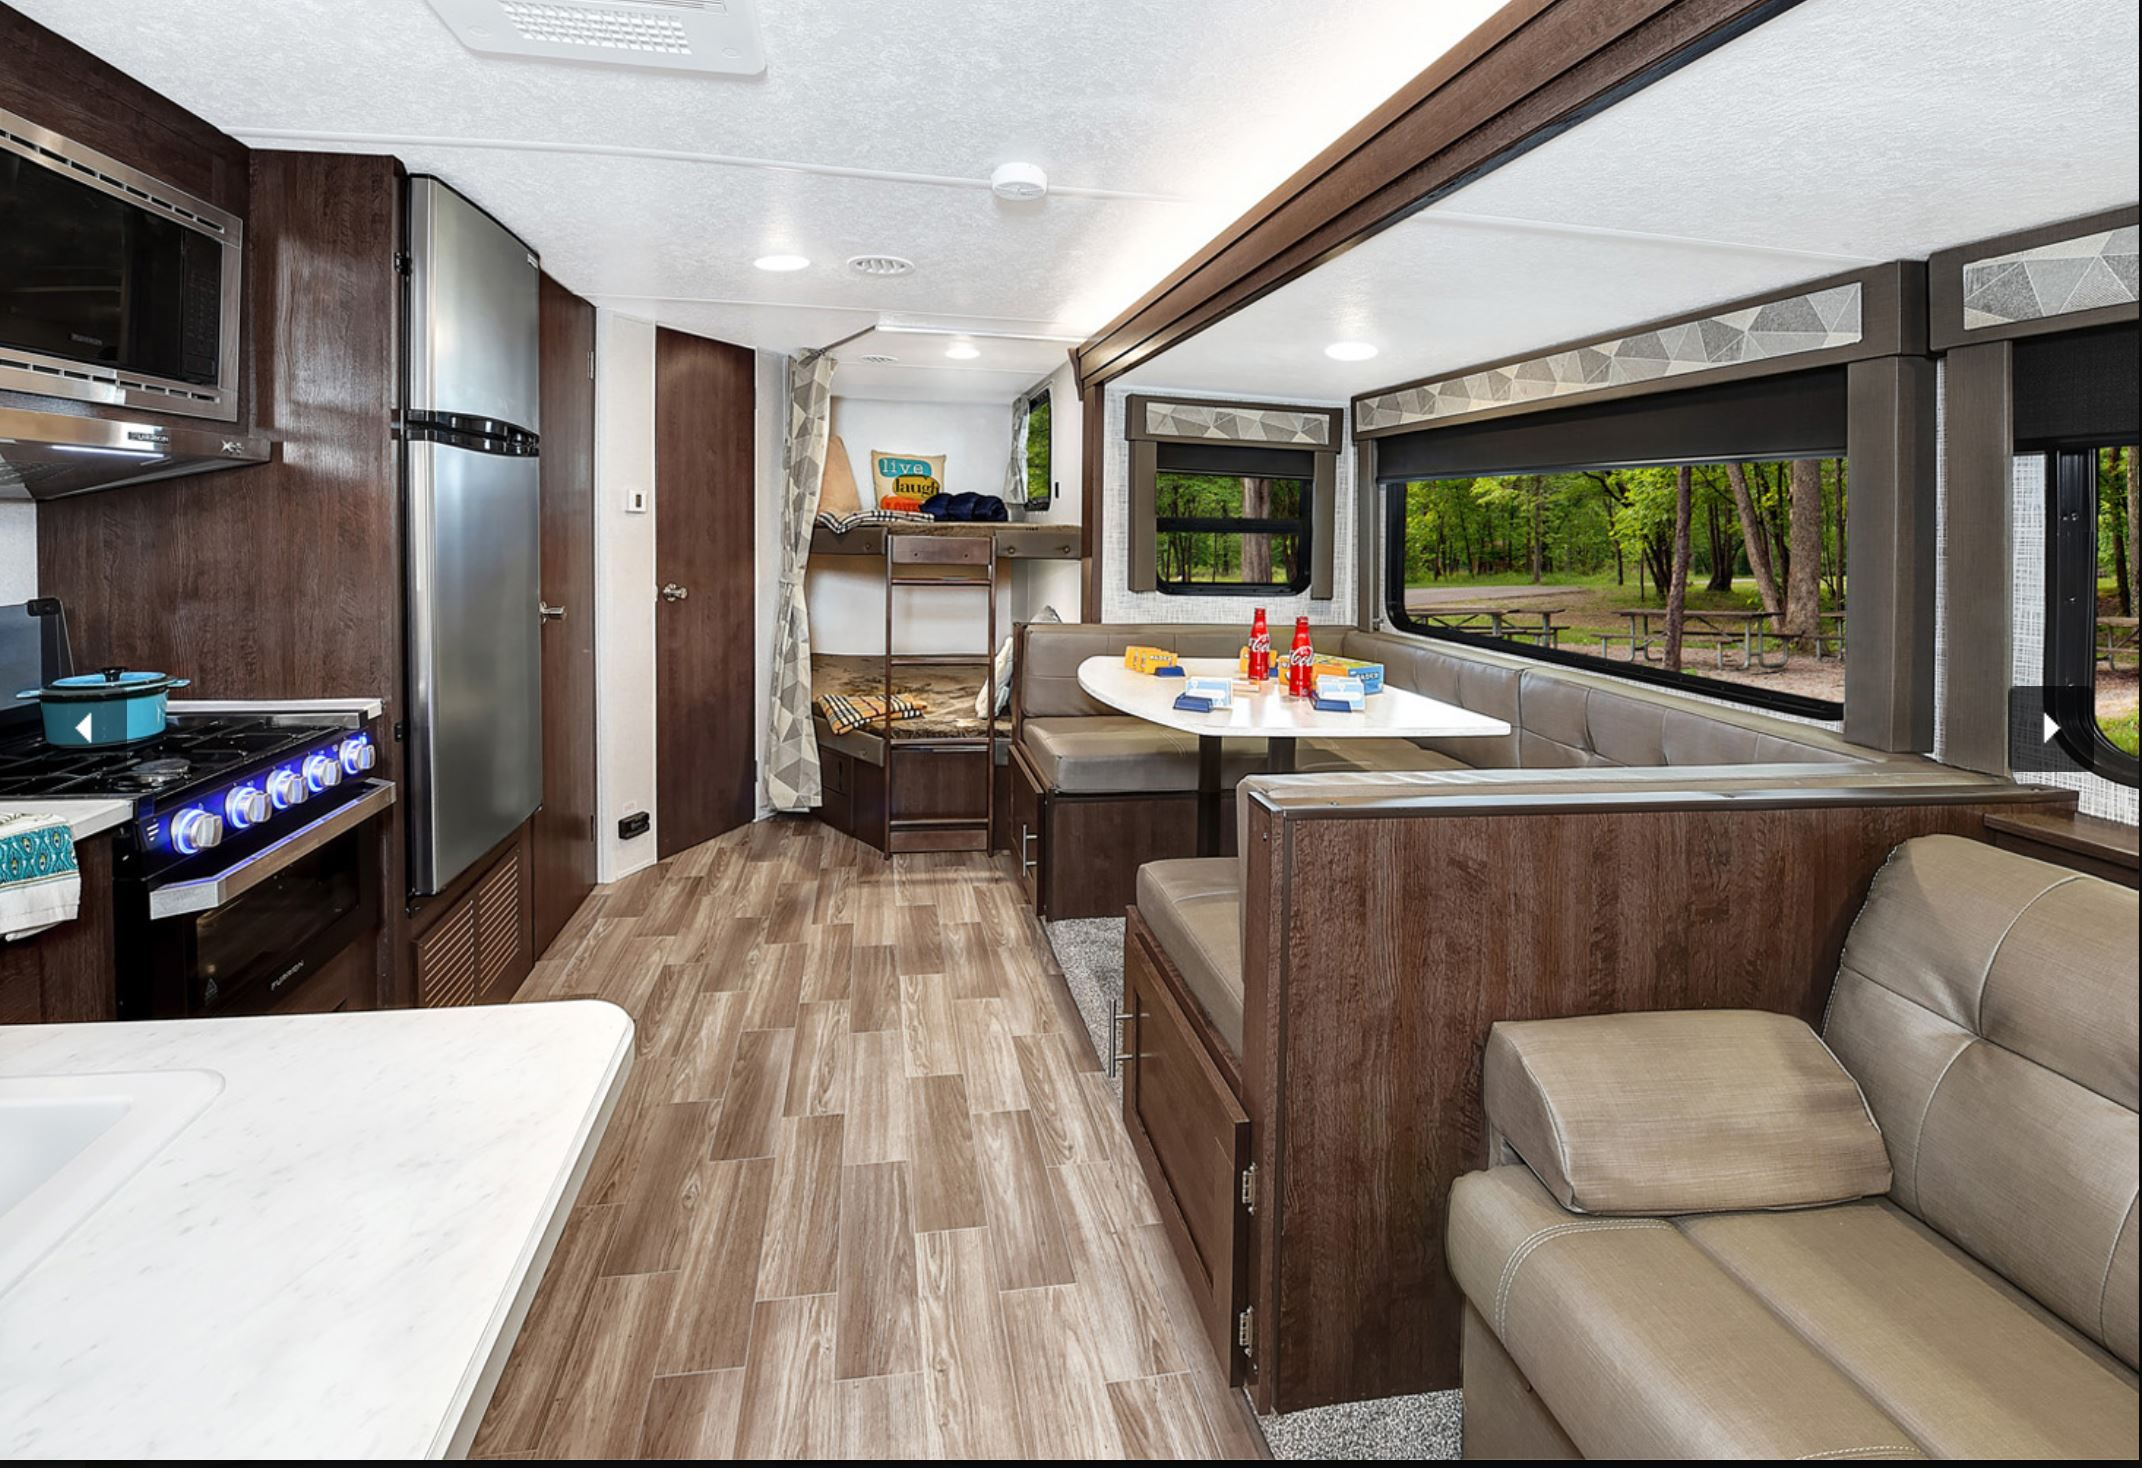 29' Salem Trailer with Slide-out Dinette & Queen bed interior view